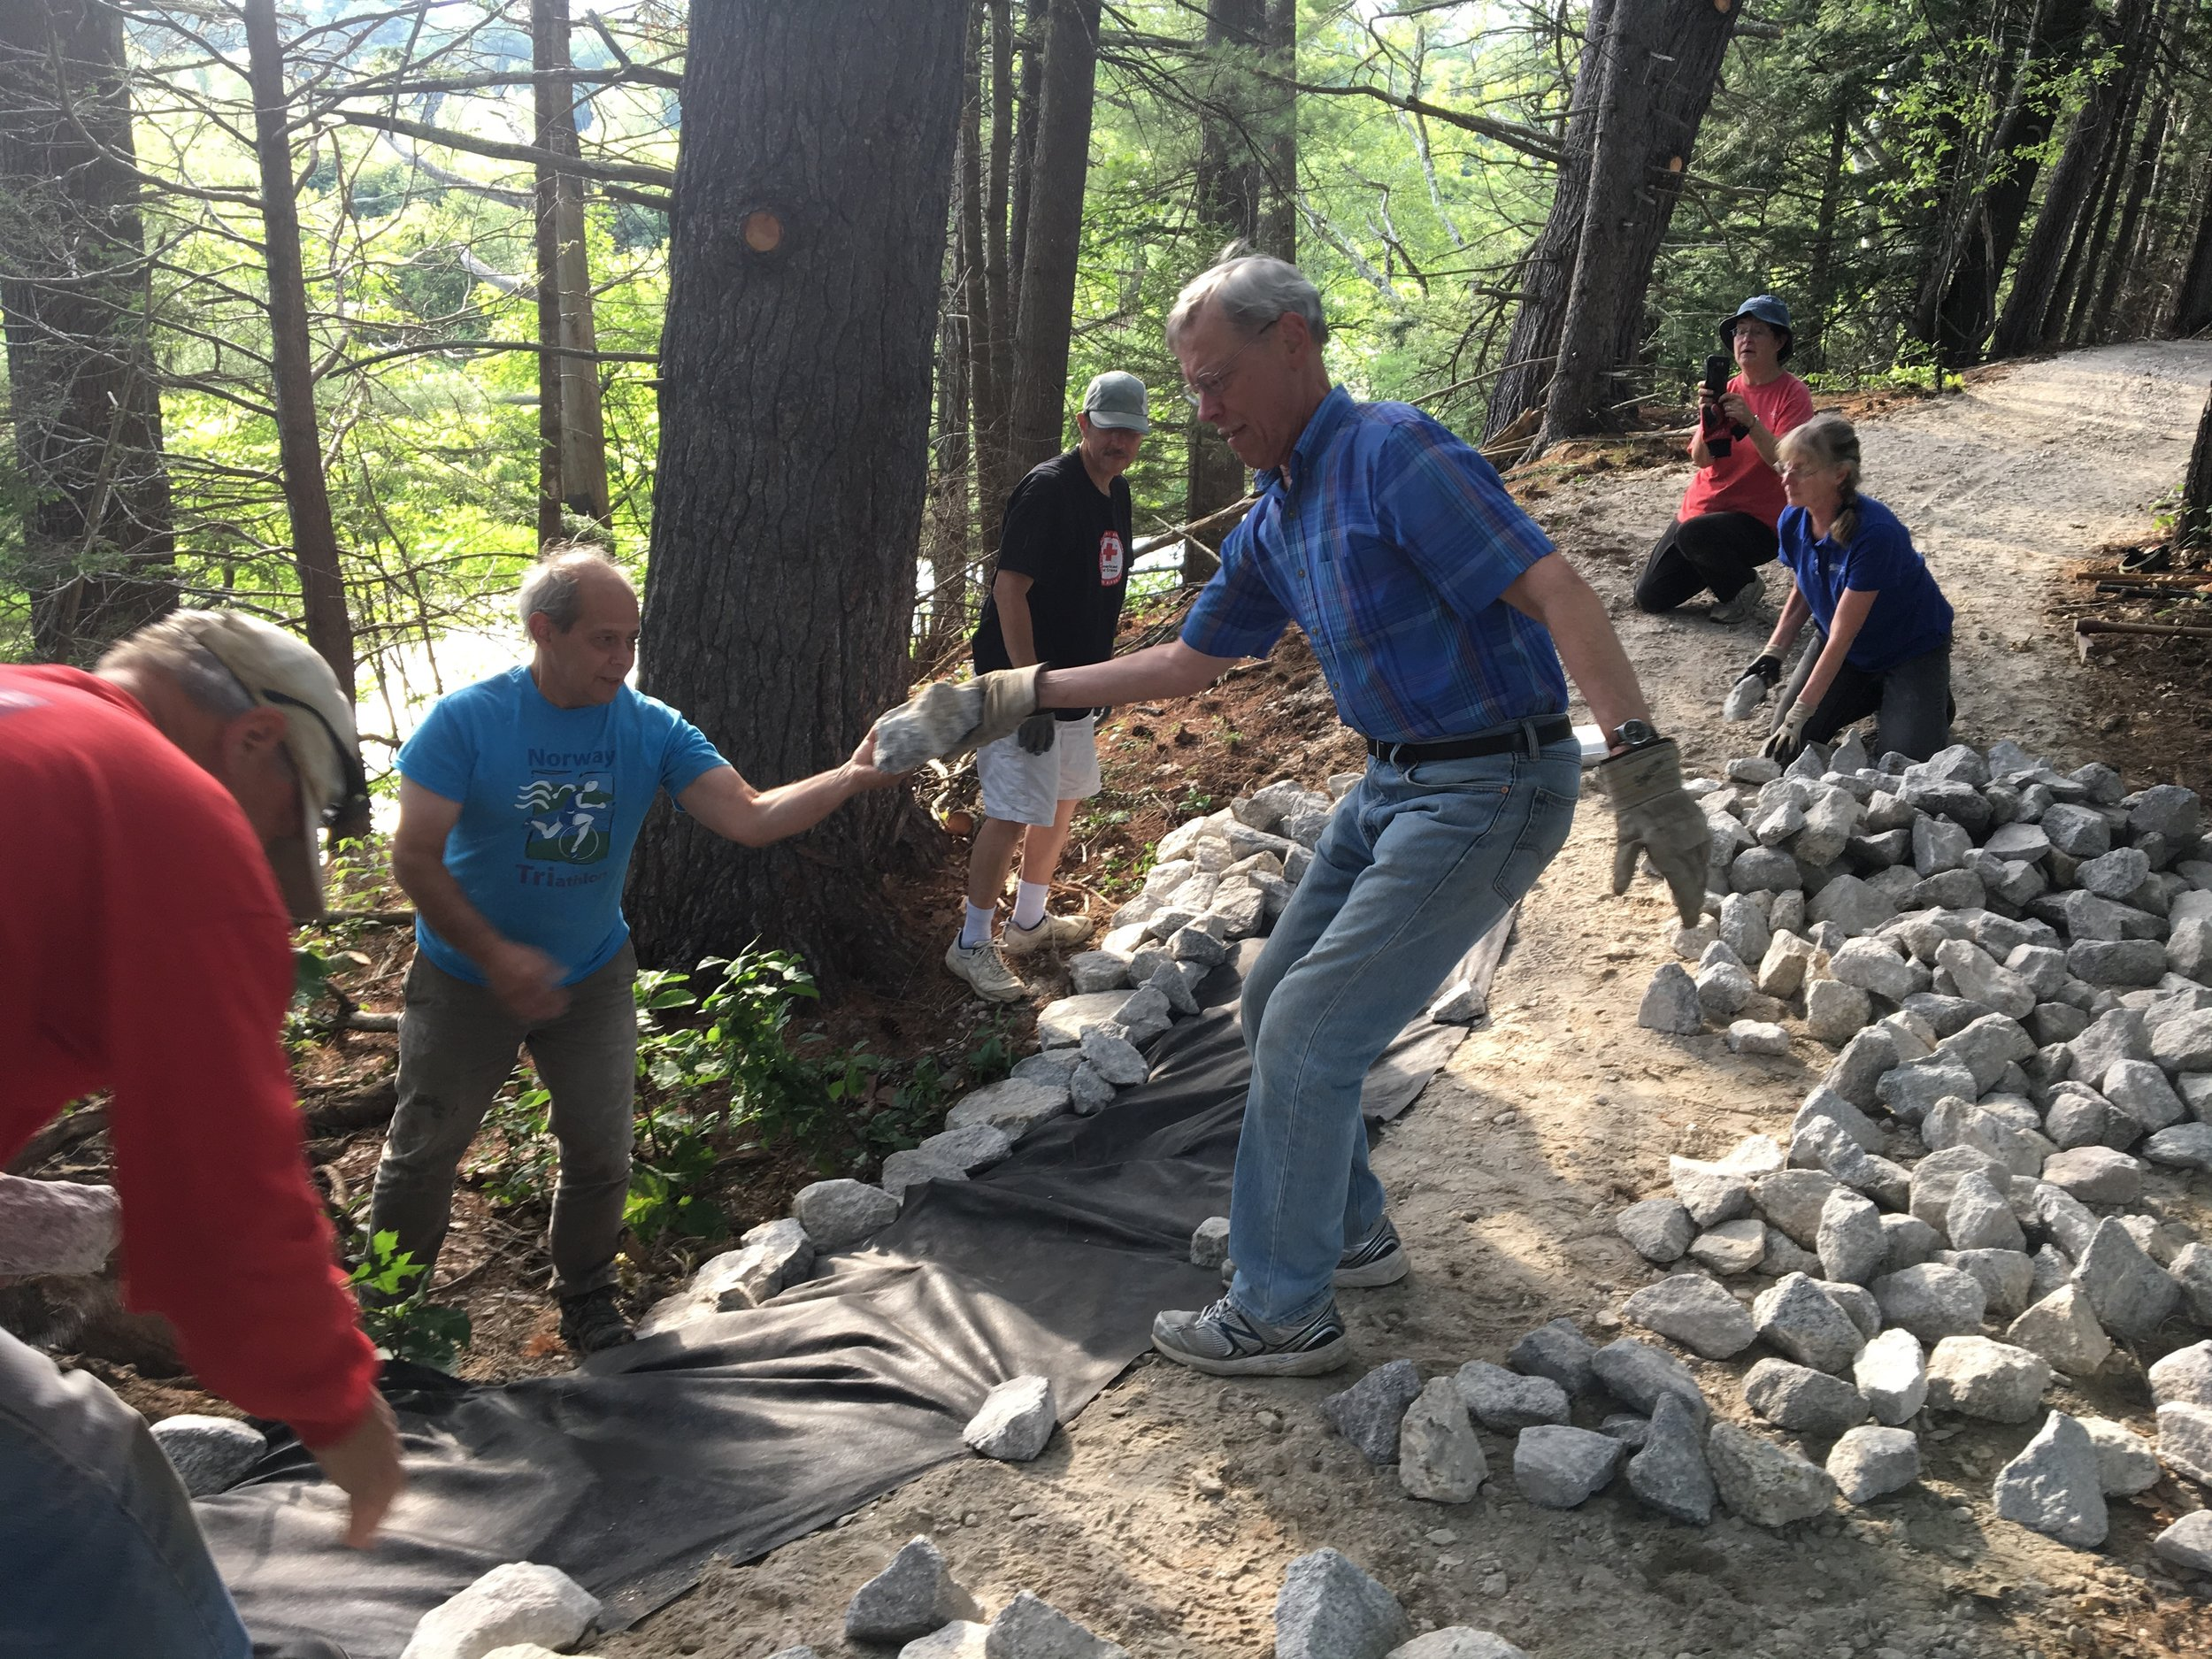 Volunteer - Meet new friends while you help Mahoosuc Land Trust build and maintain trails, monitor properties or update databases. All ages and ability levels are welcome!